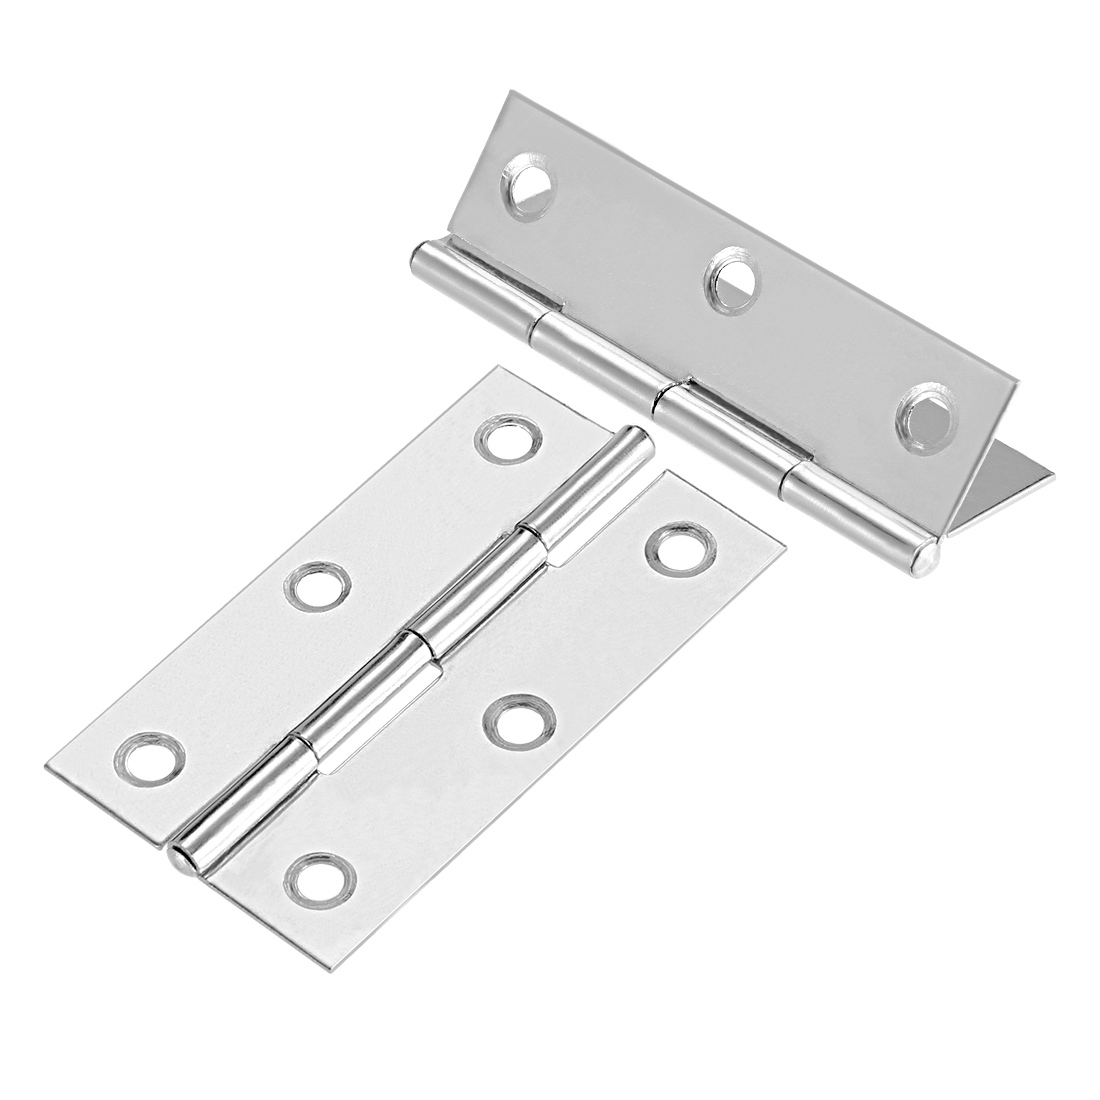 "Uxcell 2.6""  Hinge Silver Door Cabinet Hinges Fittings Brushed Chrome Plain 10pcs - image 2 de 6"